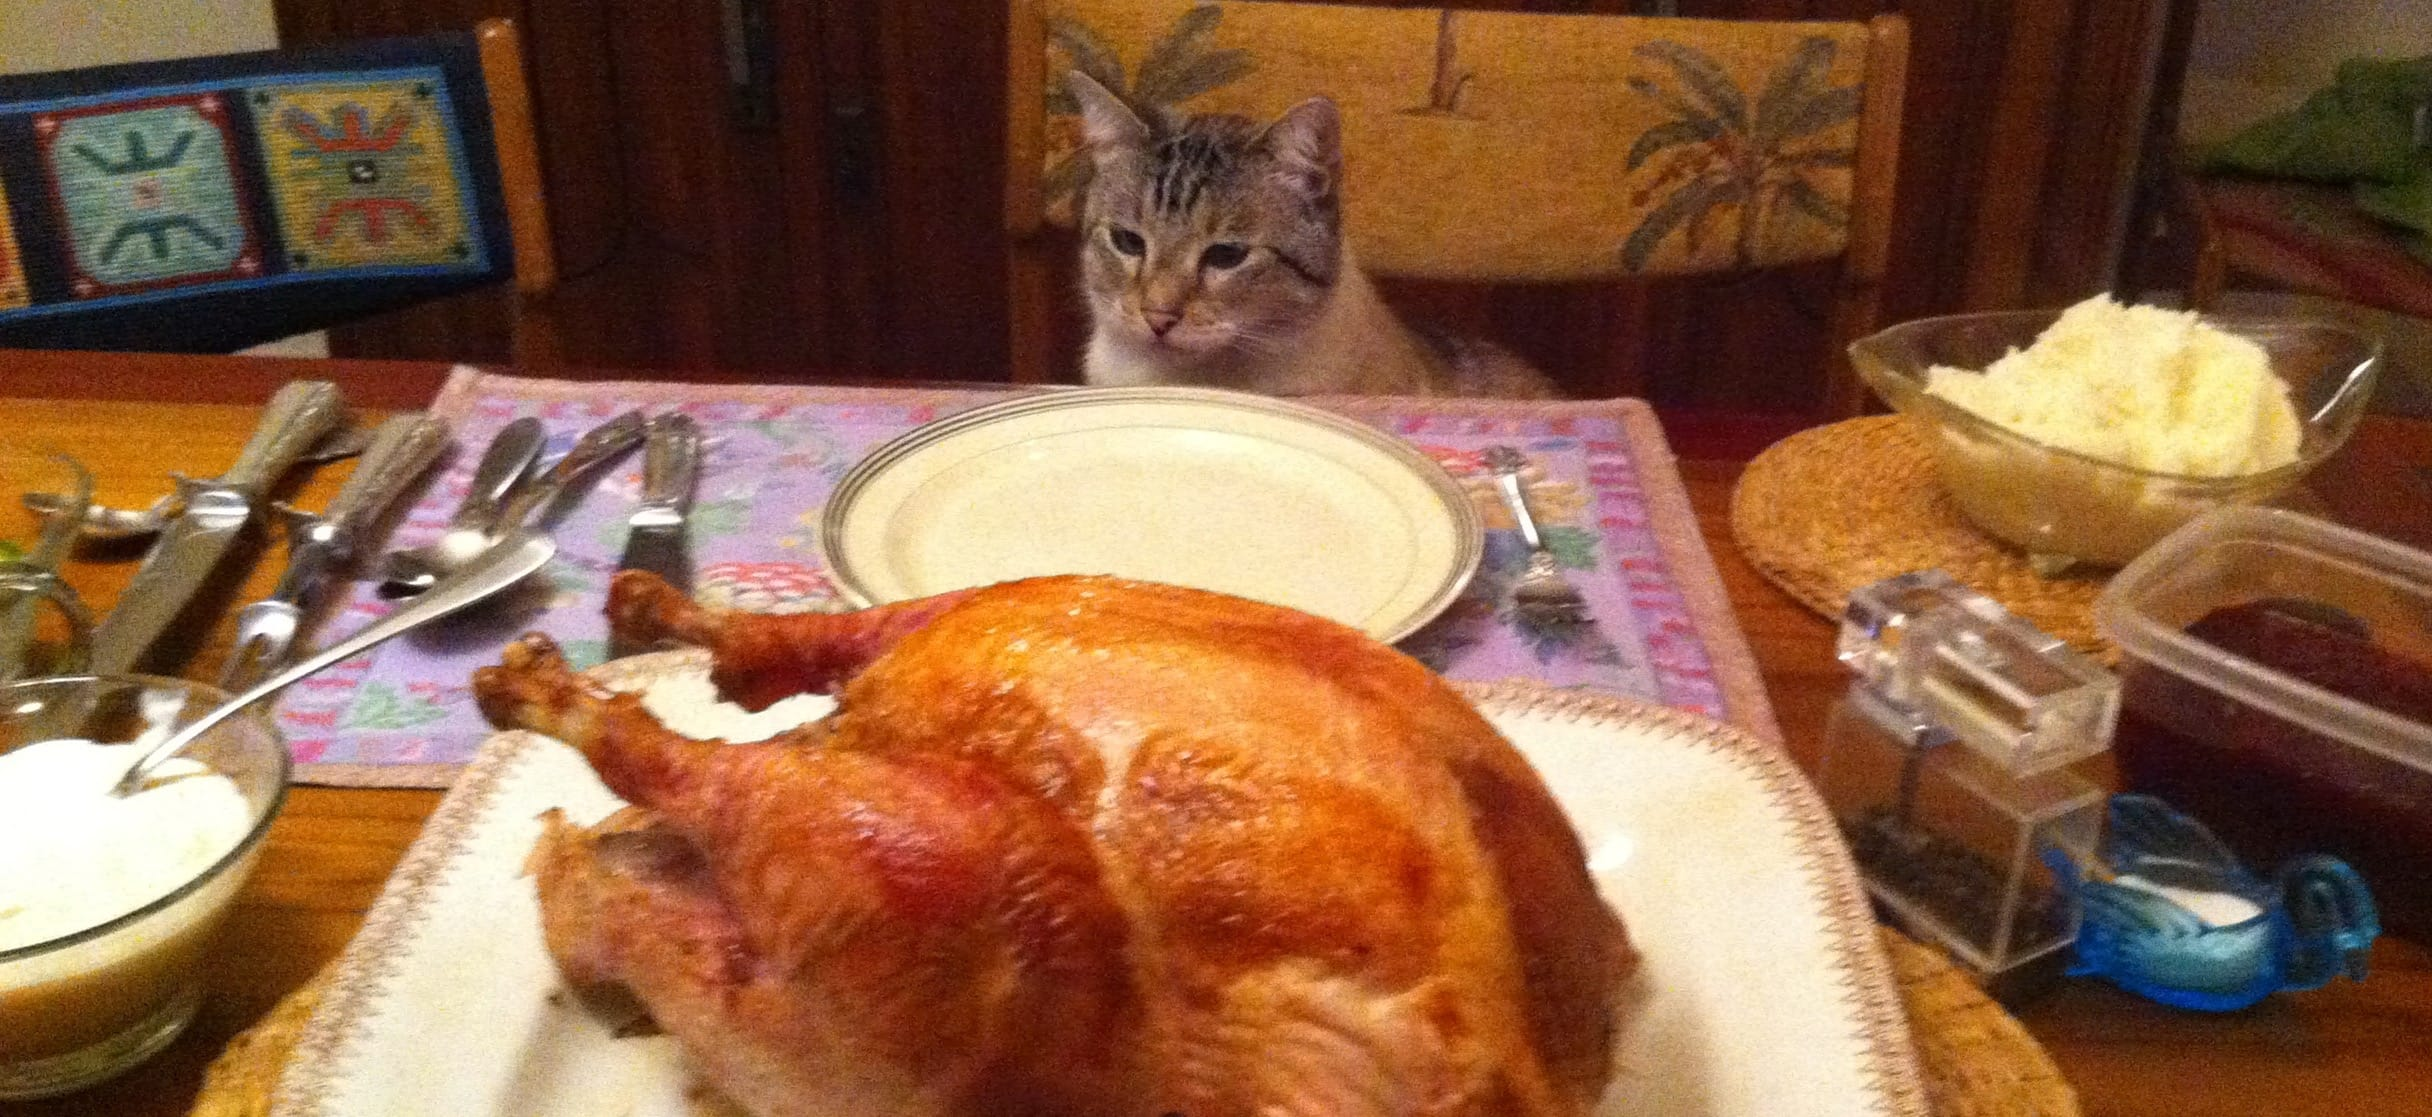 Ben, my cat, is thankful for the Thanksgiving feast. (Ellen Smart)